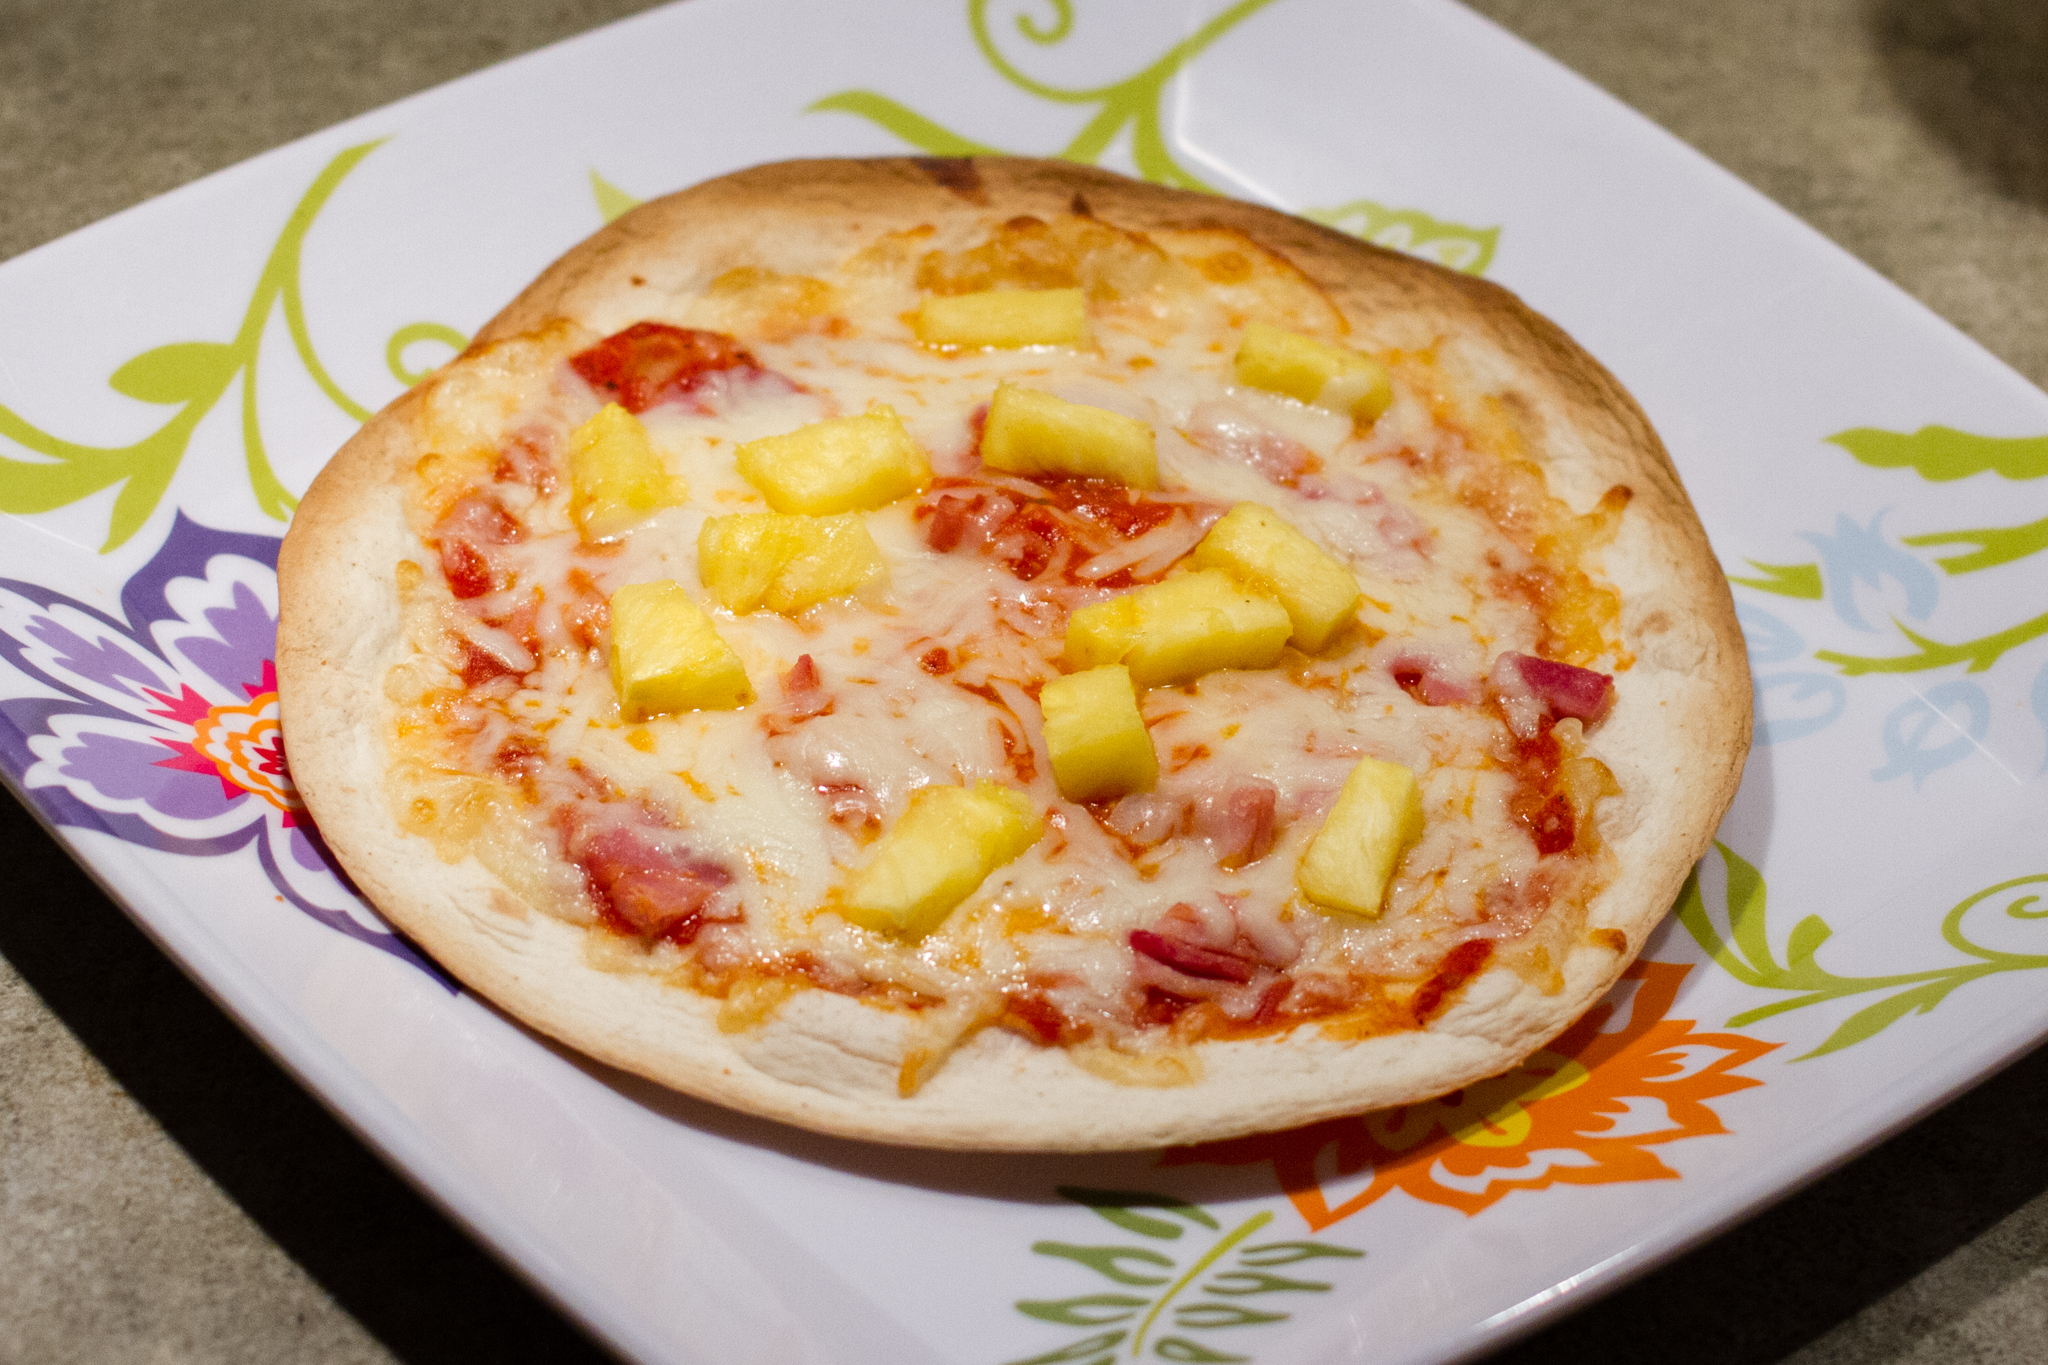 Delicious with ham and pineapple, if you're into that sort of thing.